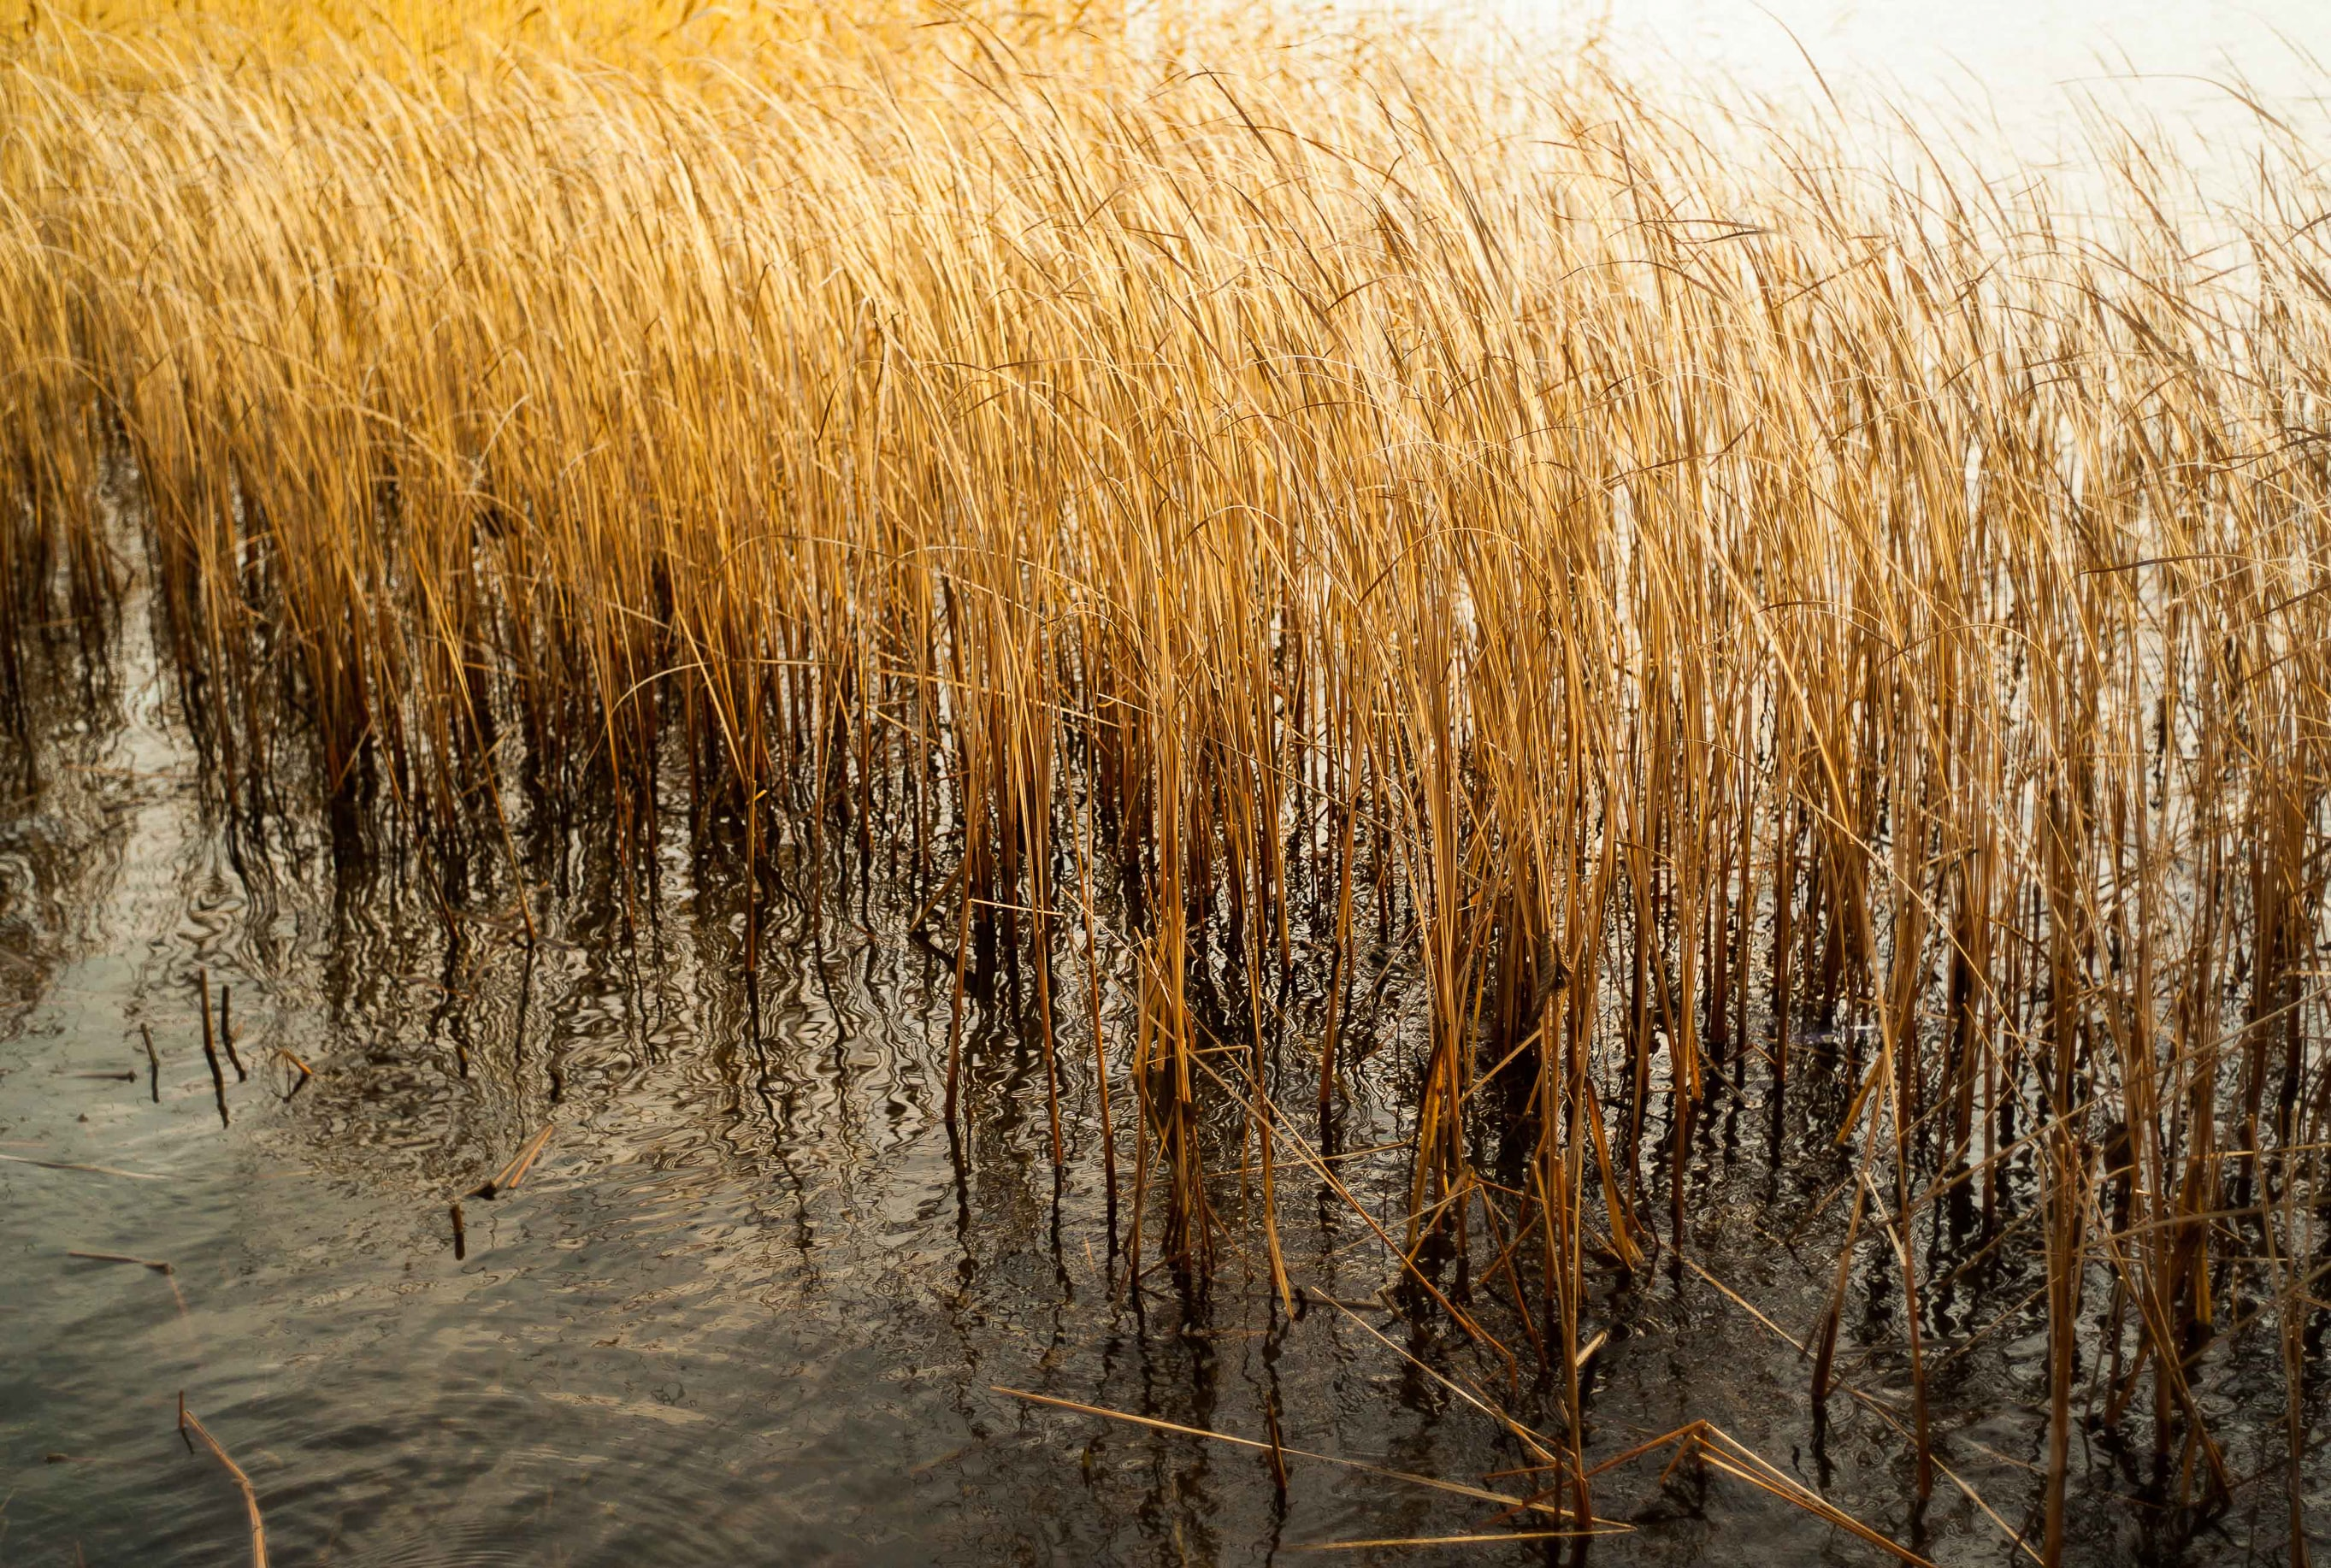 Golden reeds in a body of water swaying in the wind in Djurgården